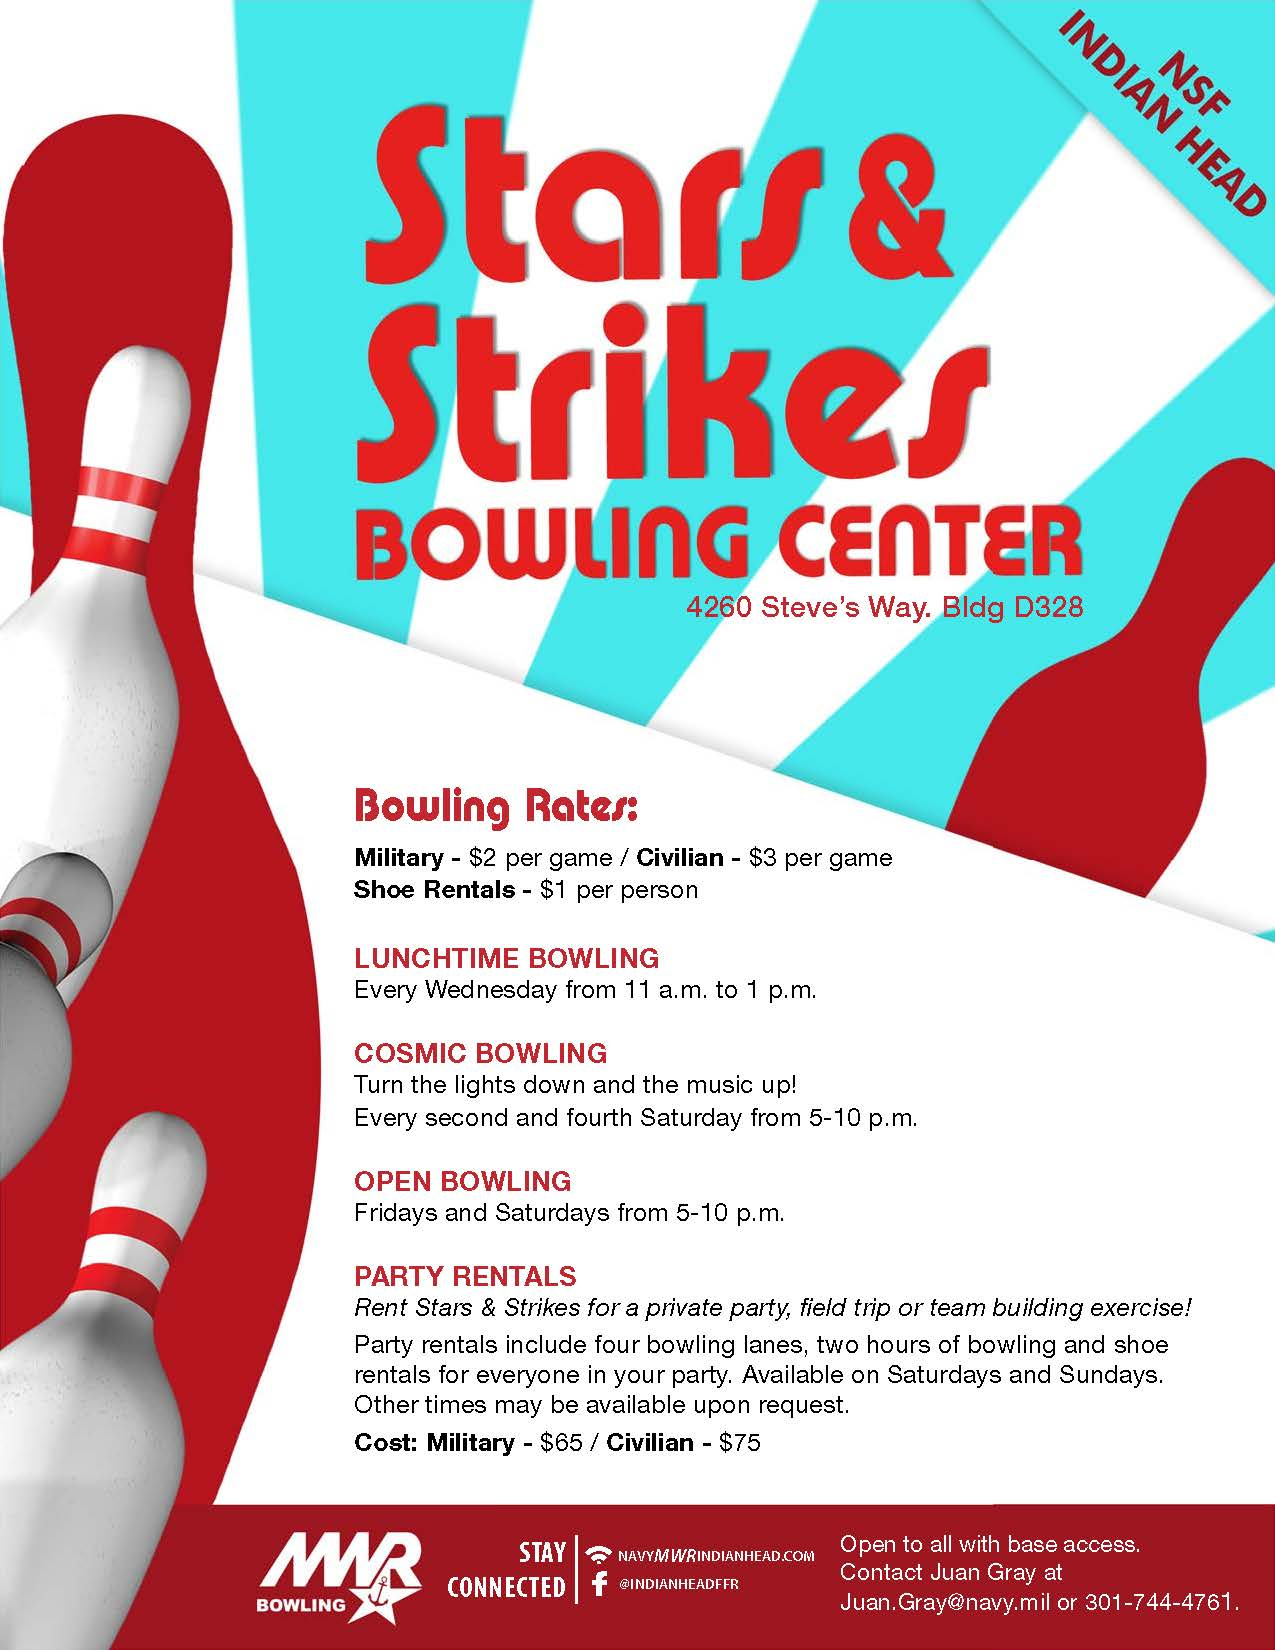 Stars & Strikes Bowling Center